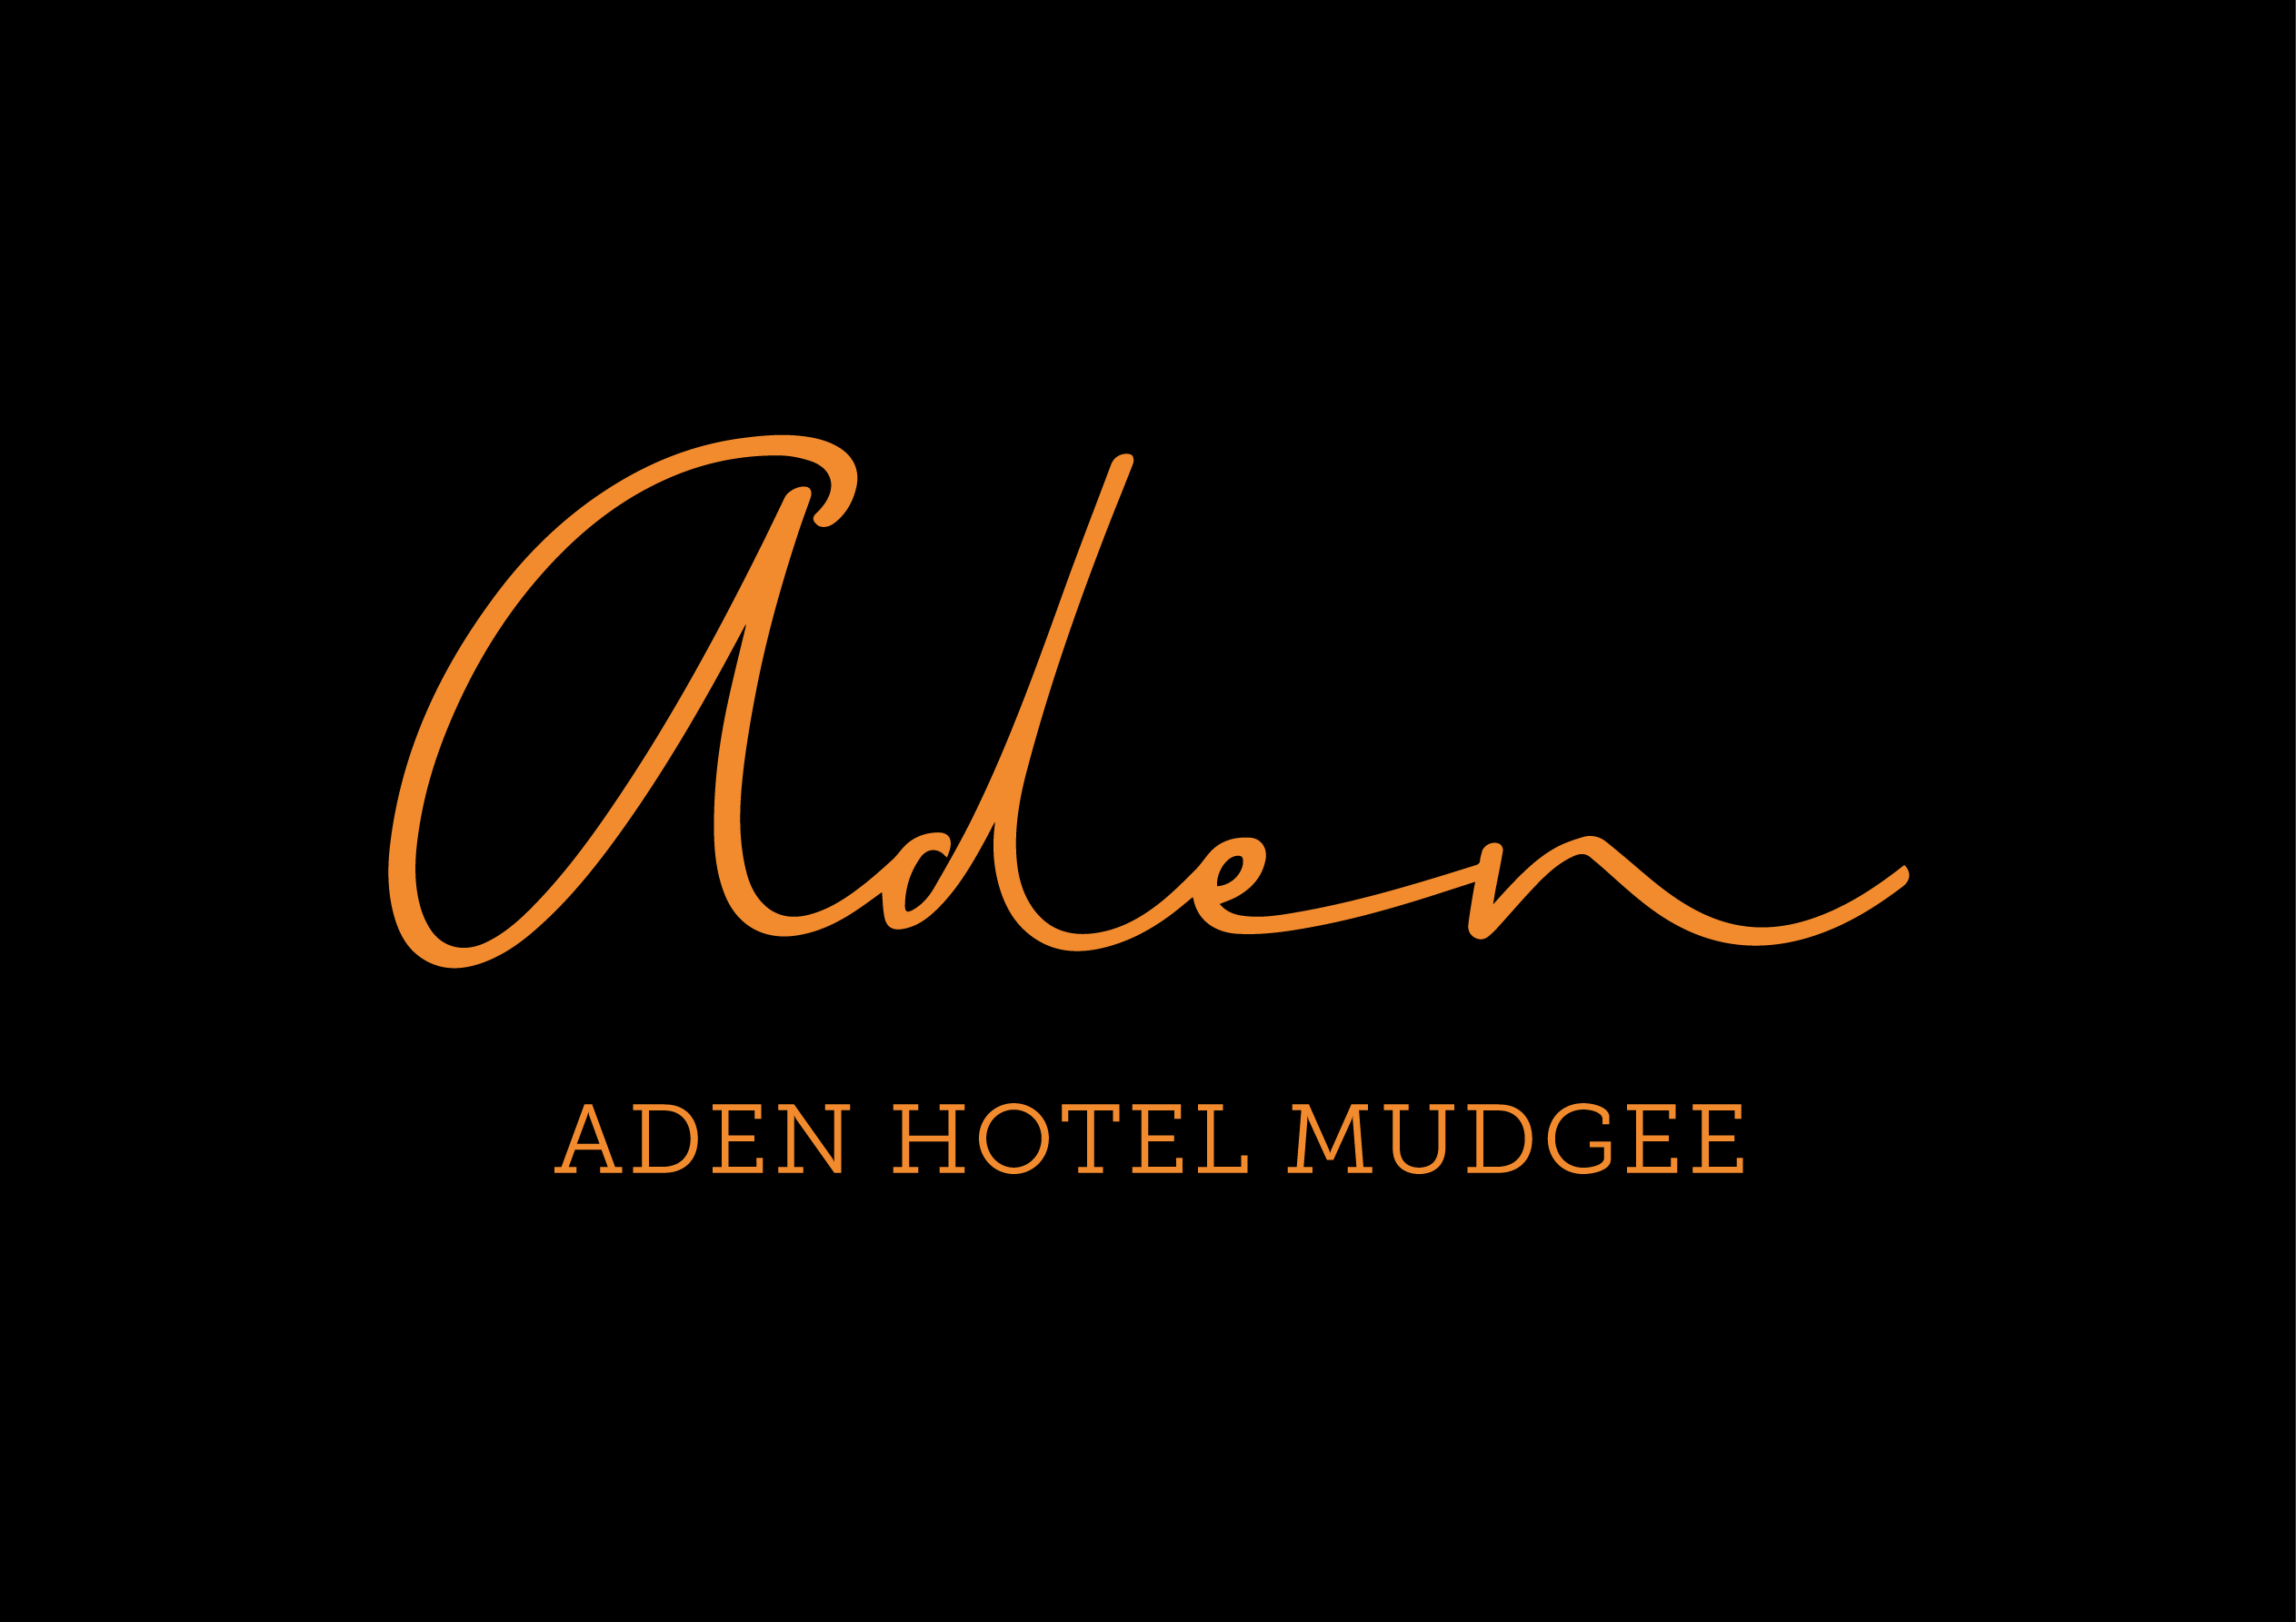 Comfort Inn Aden Hotel Mudgee - Bundaberg Accommodation